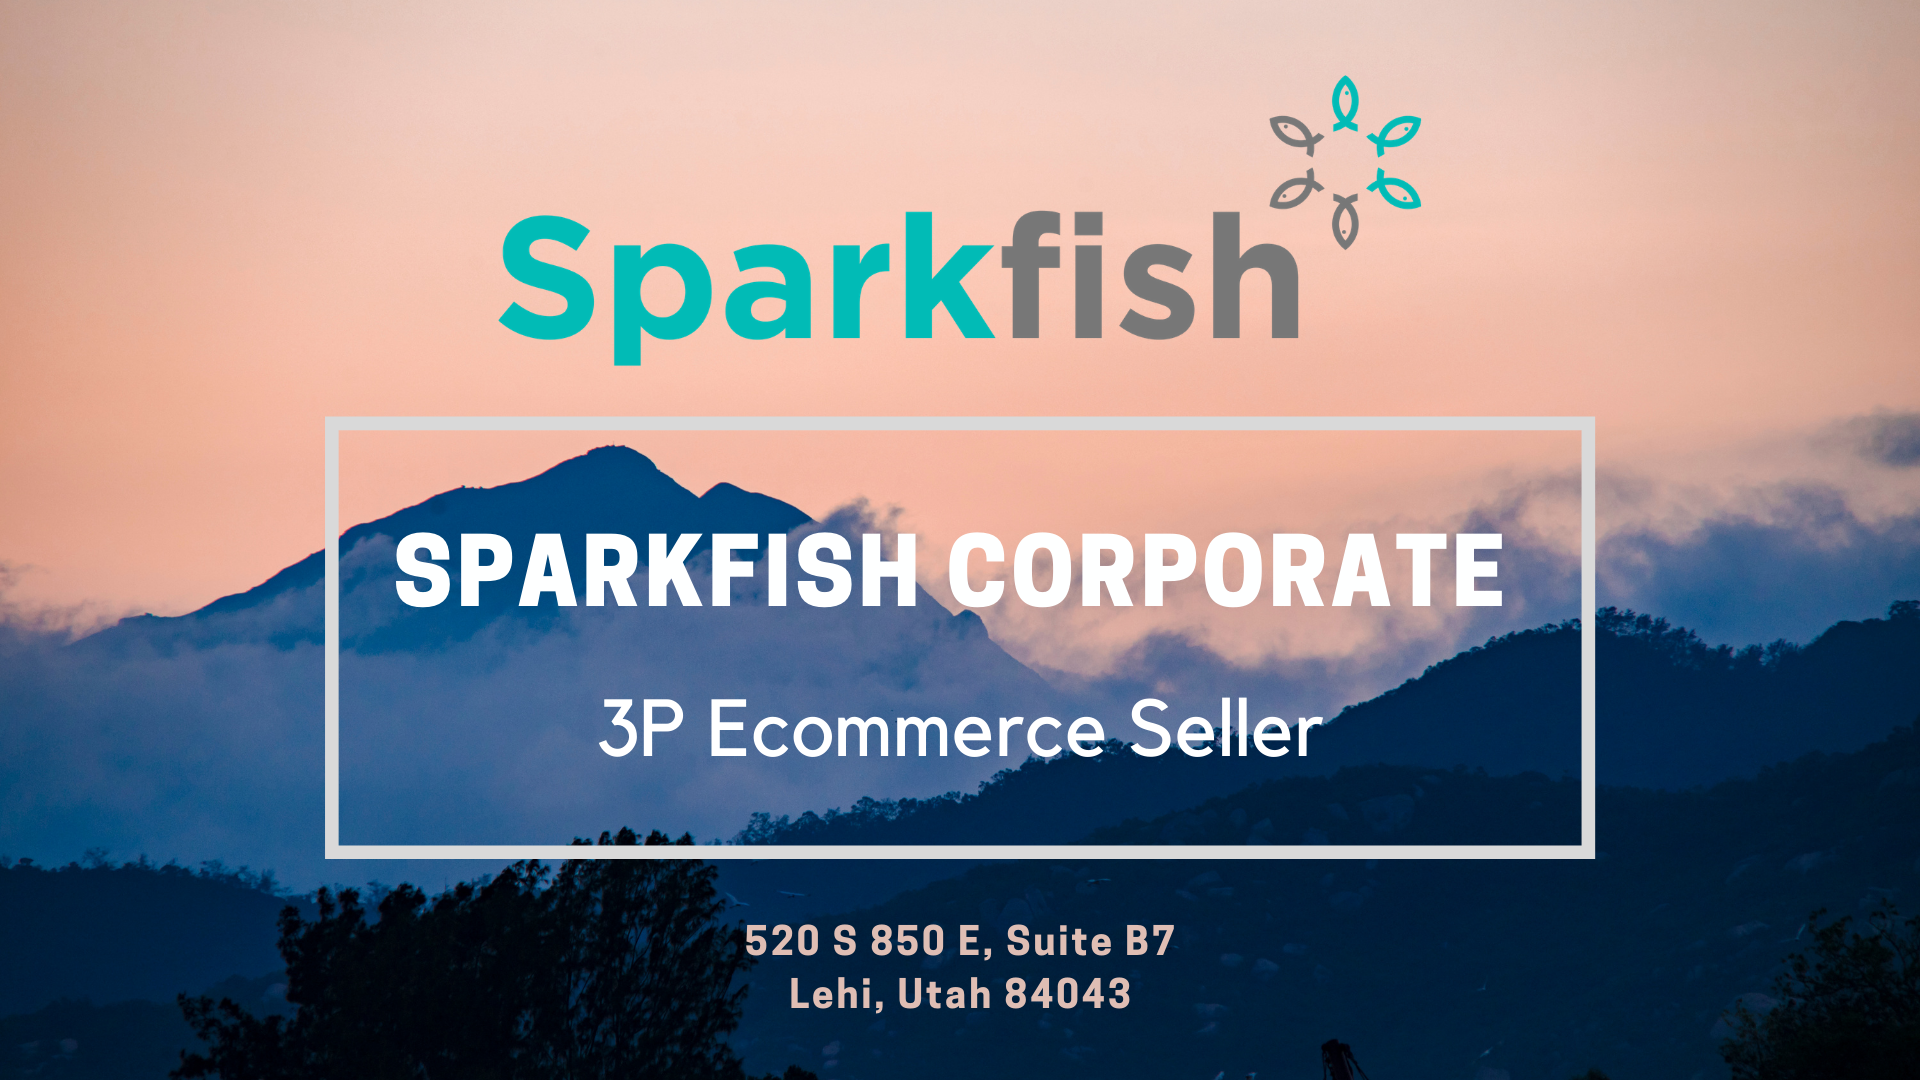 Sparkfish Corporate